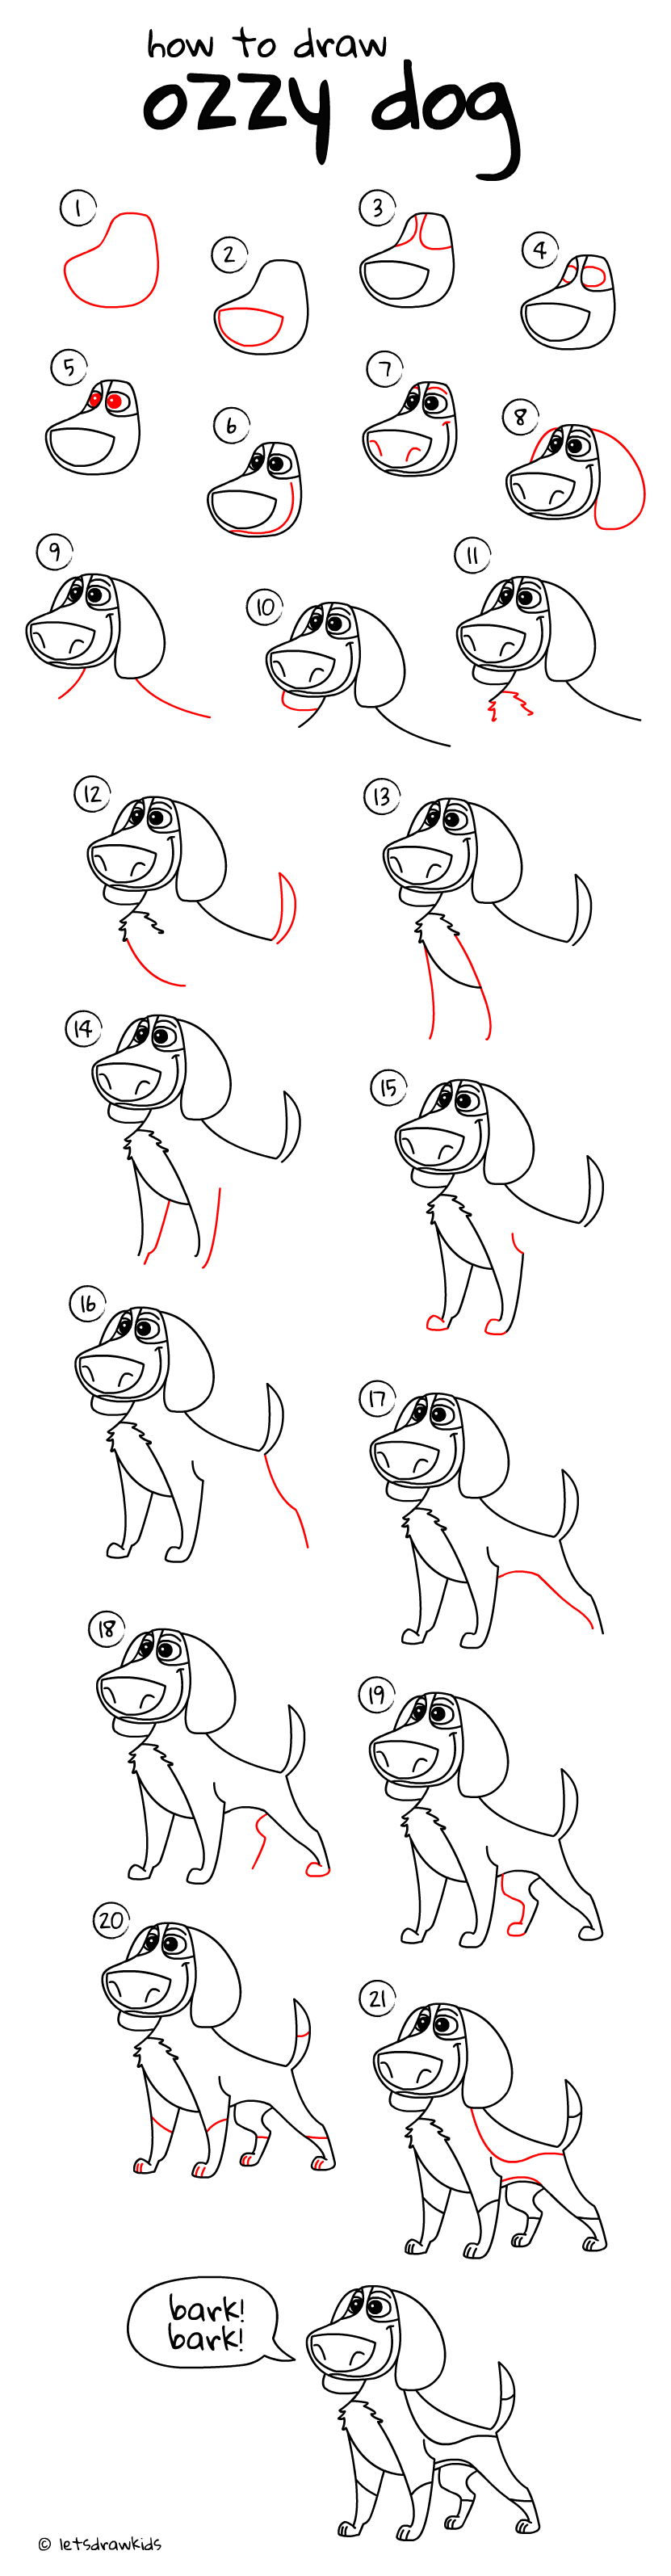 How to draw Ozzy dog. Easy drawing, step by step, perfect for kids! Let's draw kids. http://letsdrawkids.com/